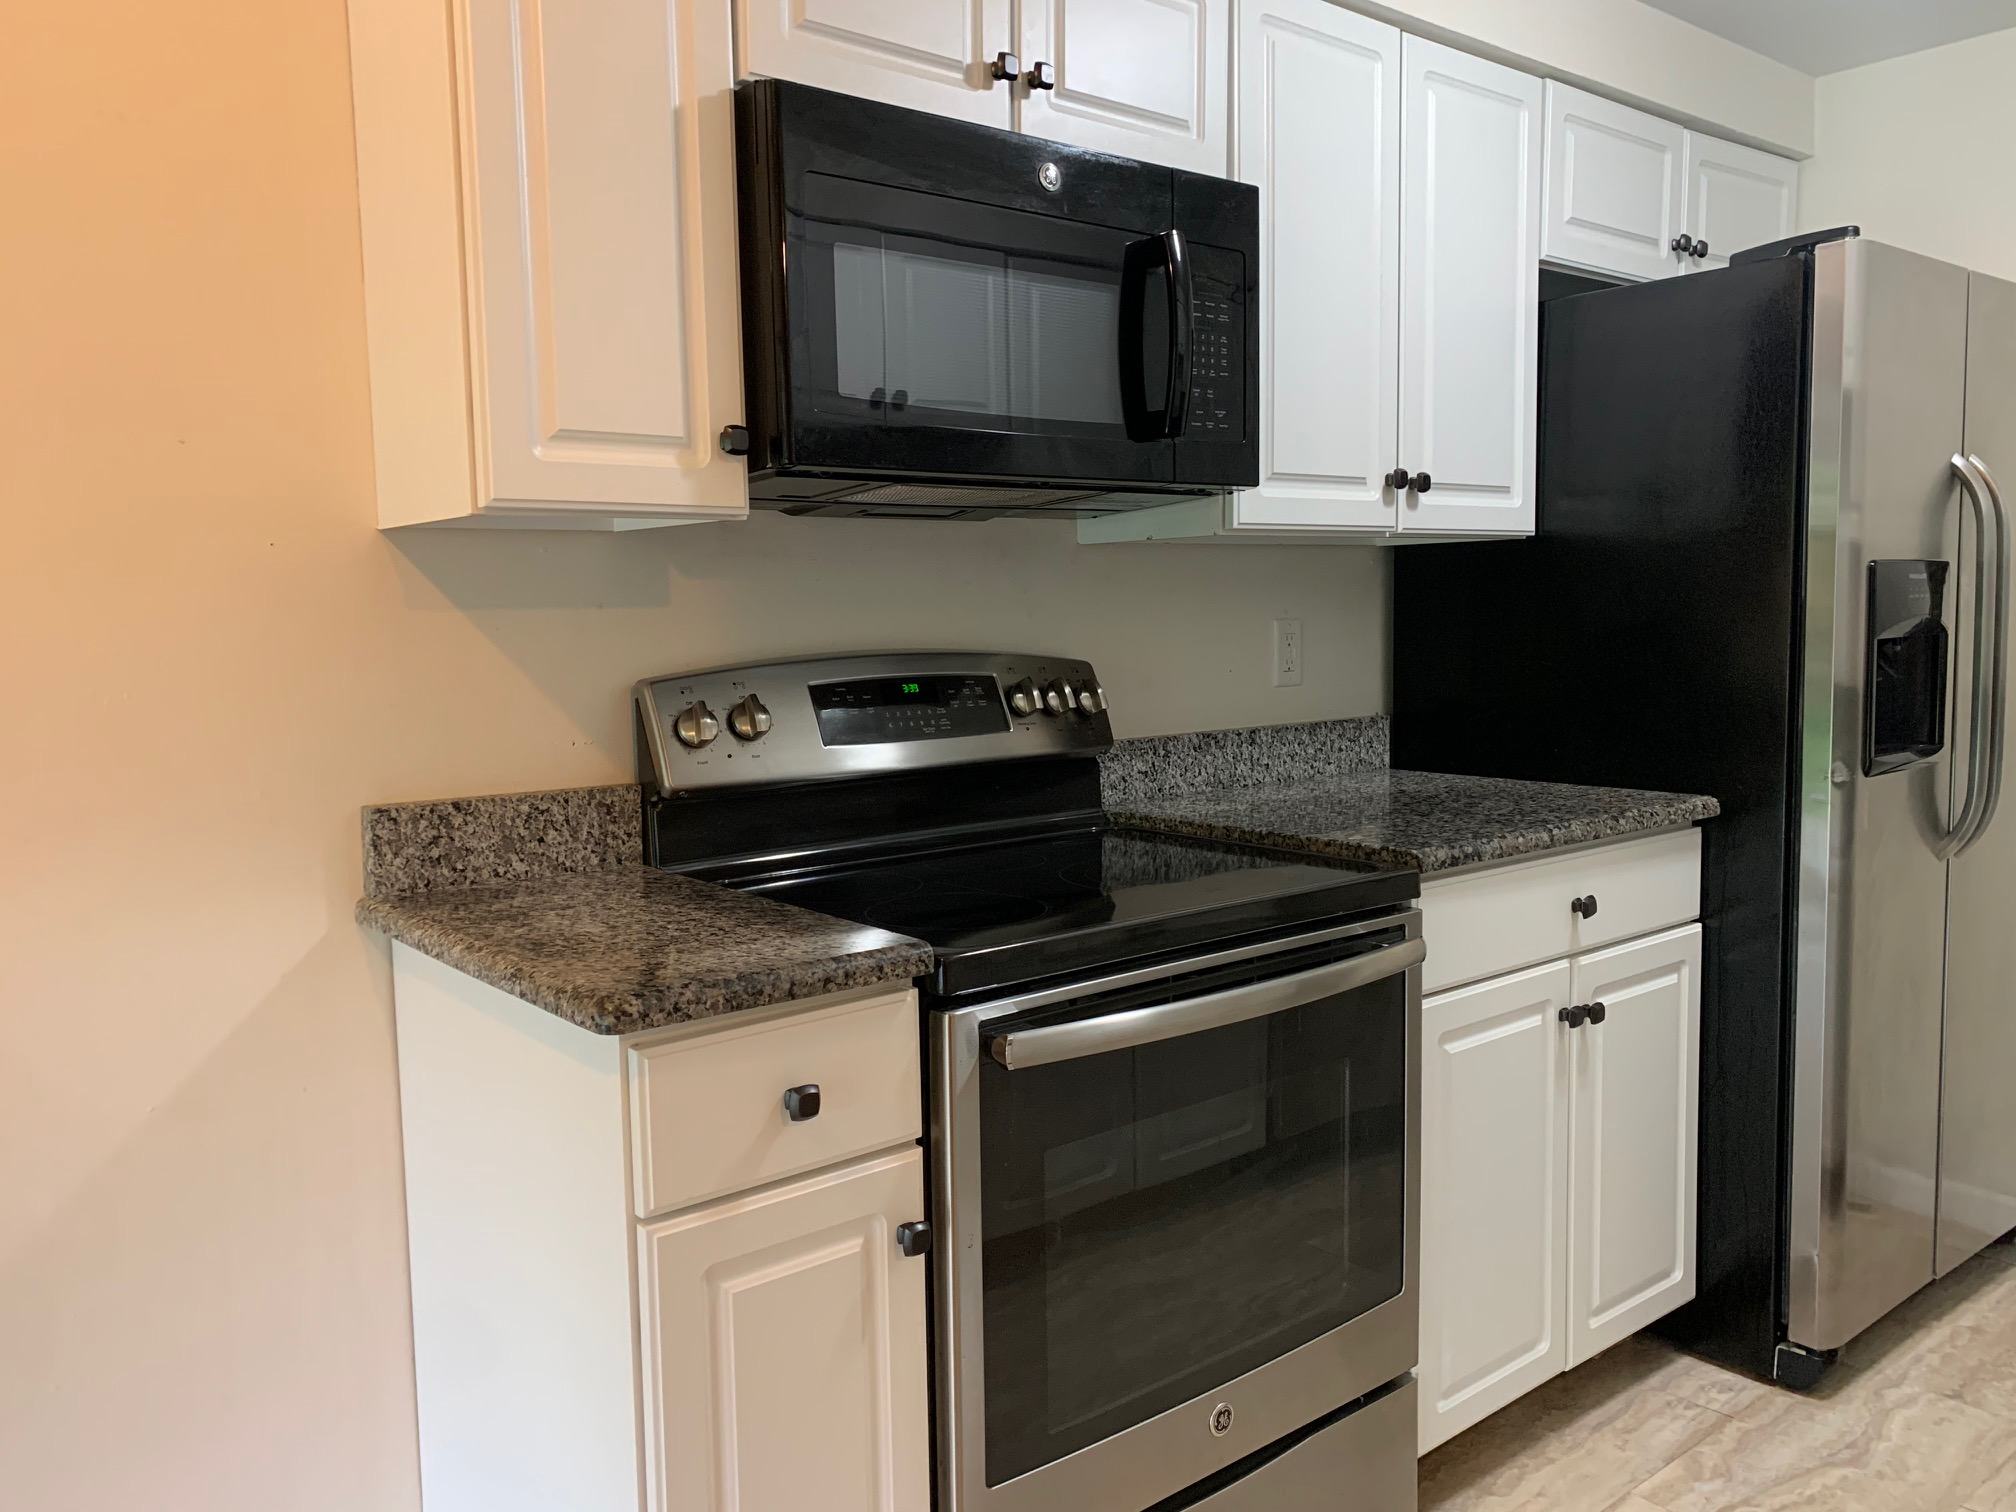 6 Westerly St, Newark, Delaware 19713, 3 Rooms Rooms,1 BathroomBathrooms,House,For Rent,Westerly St,1114